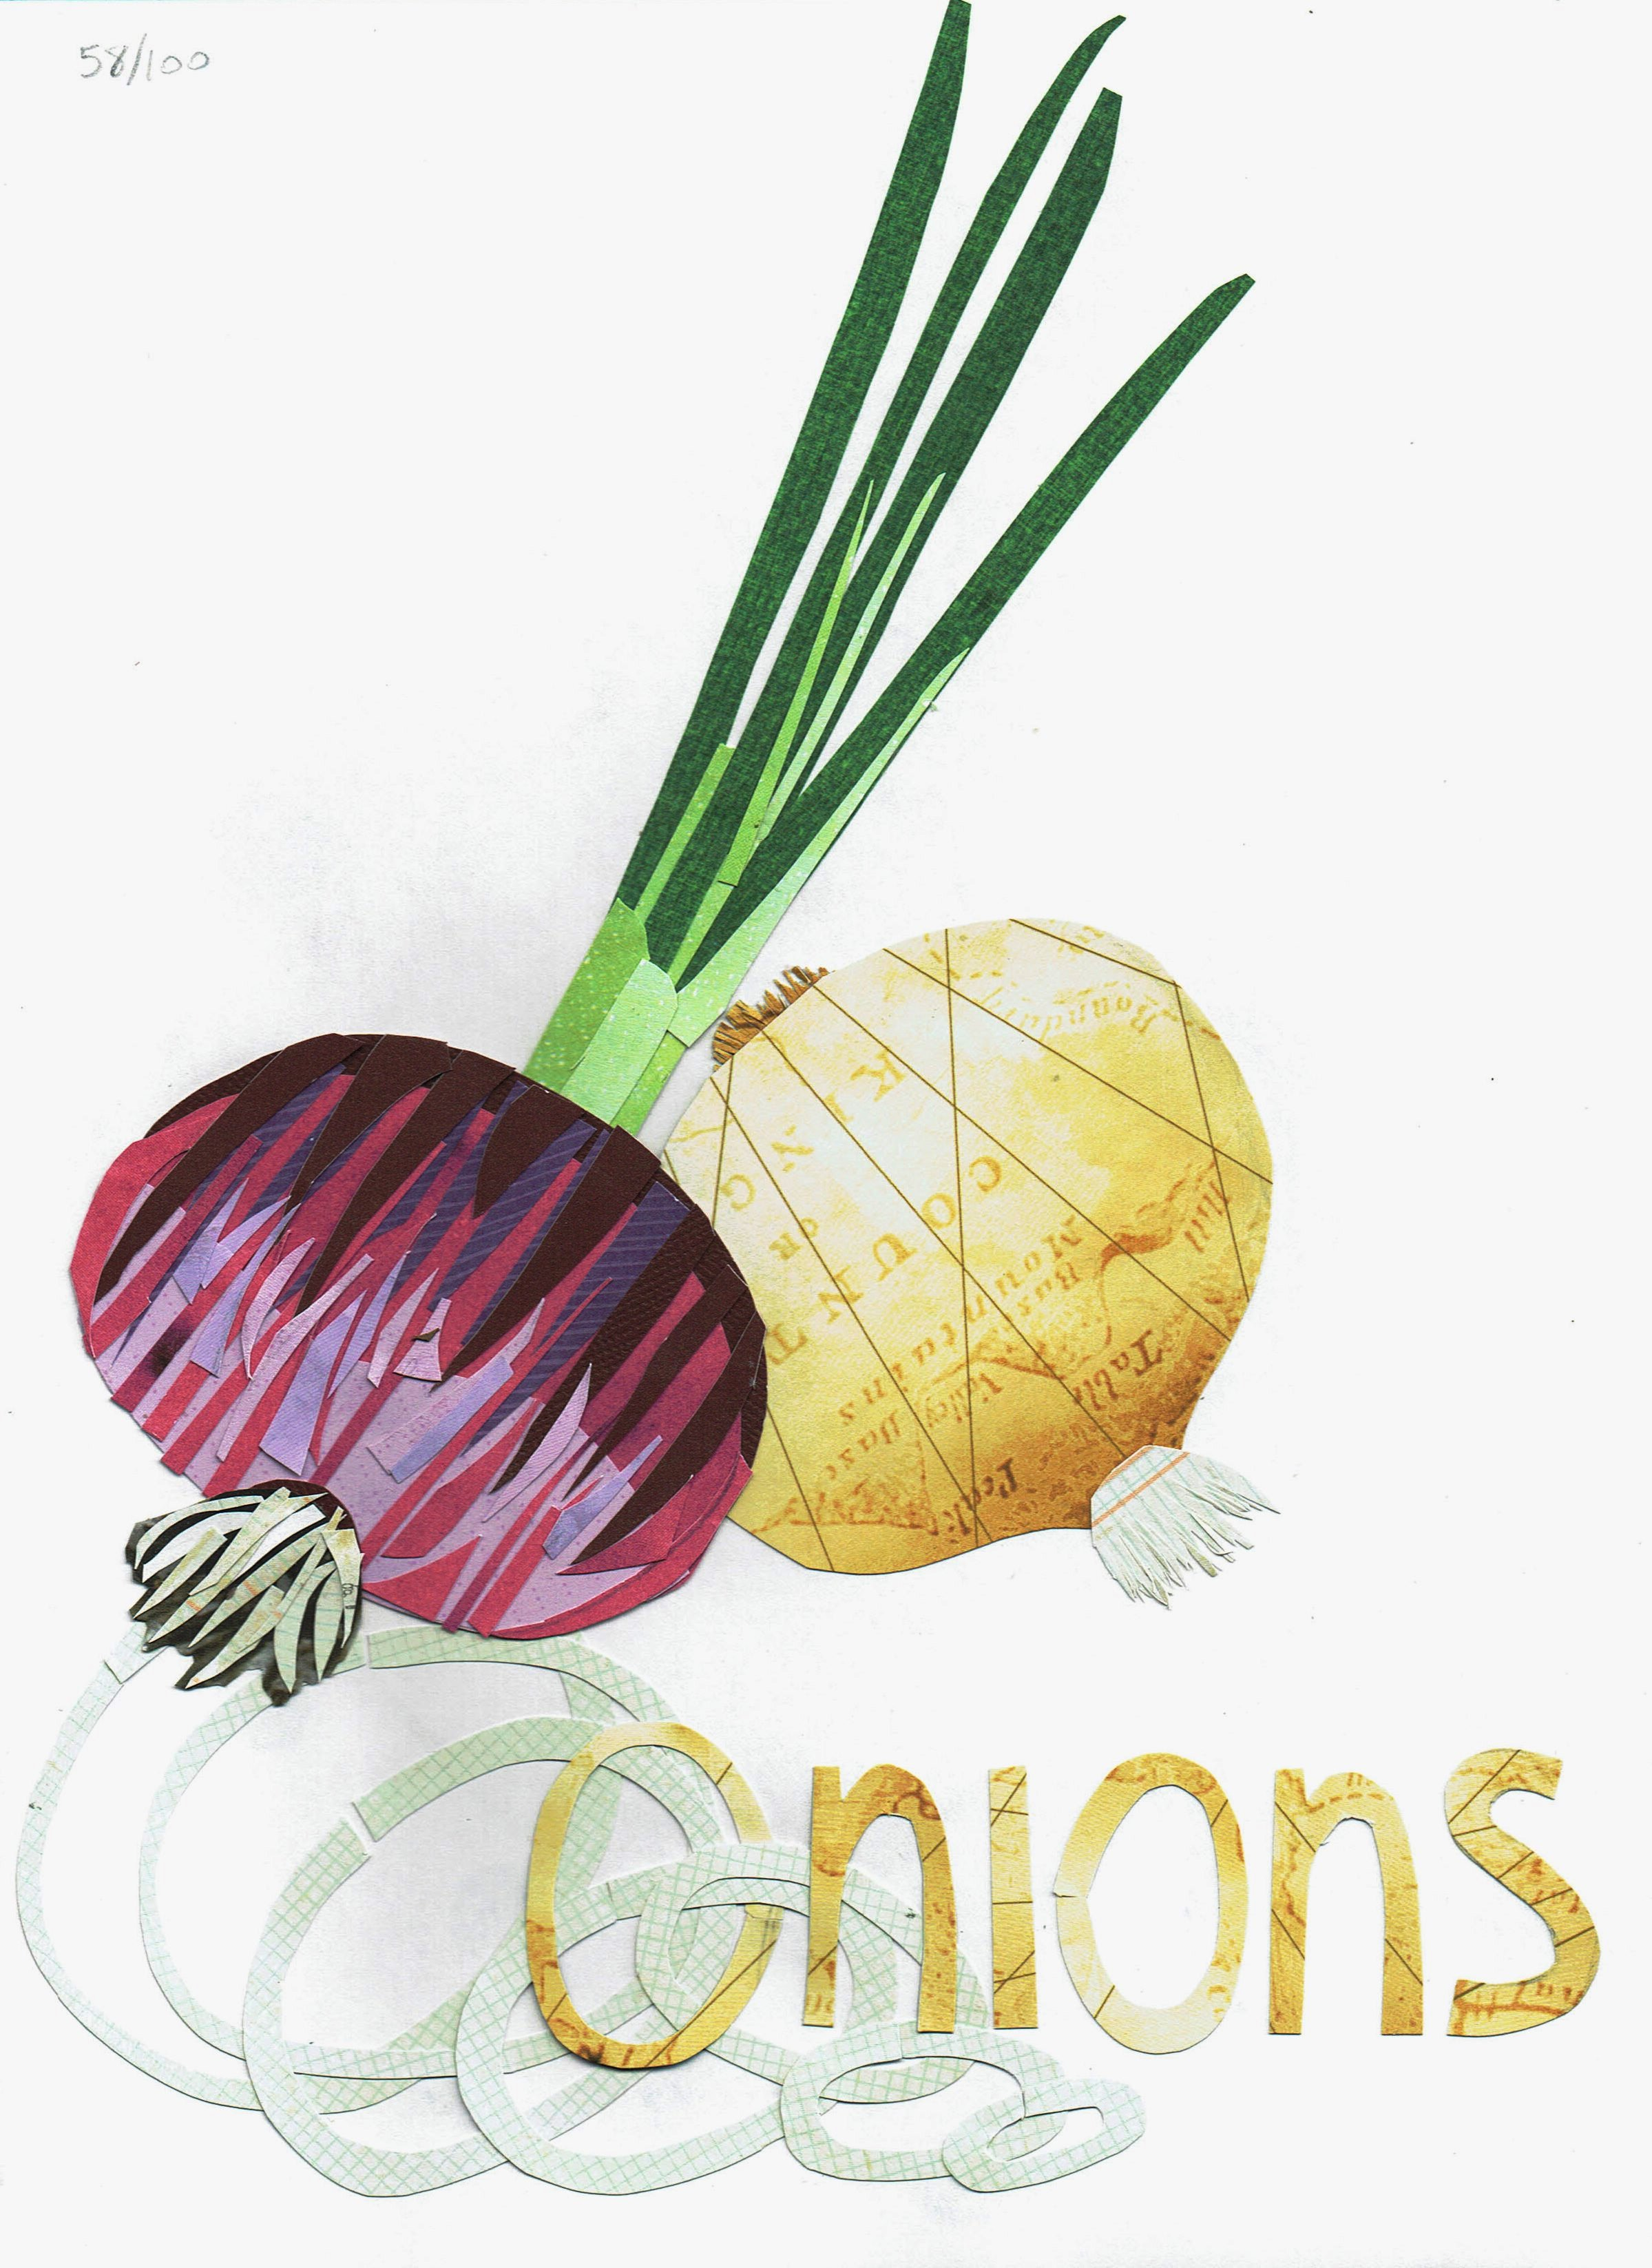 Day 58 - Onions